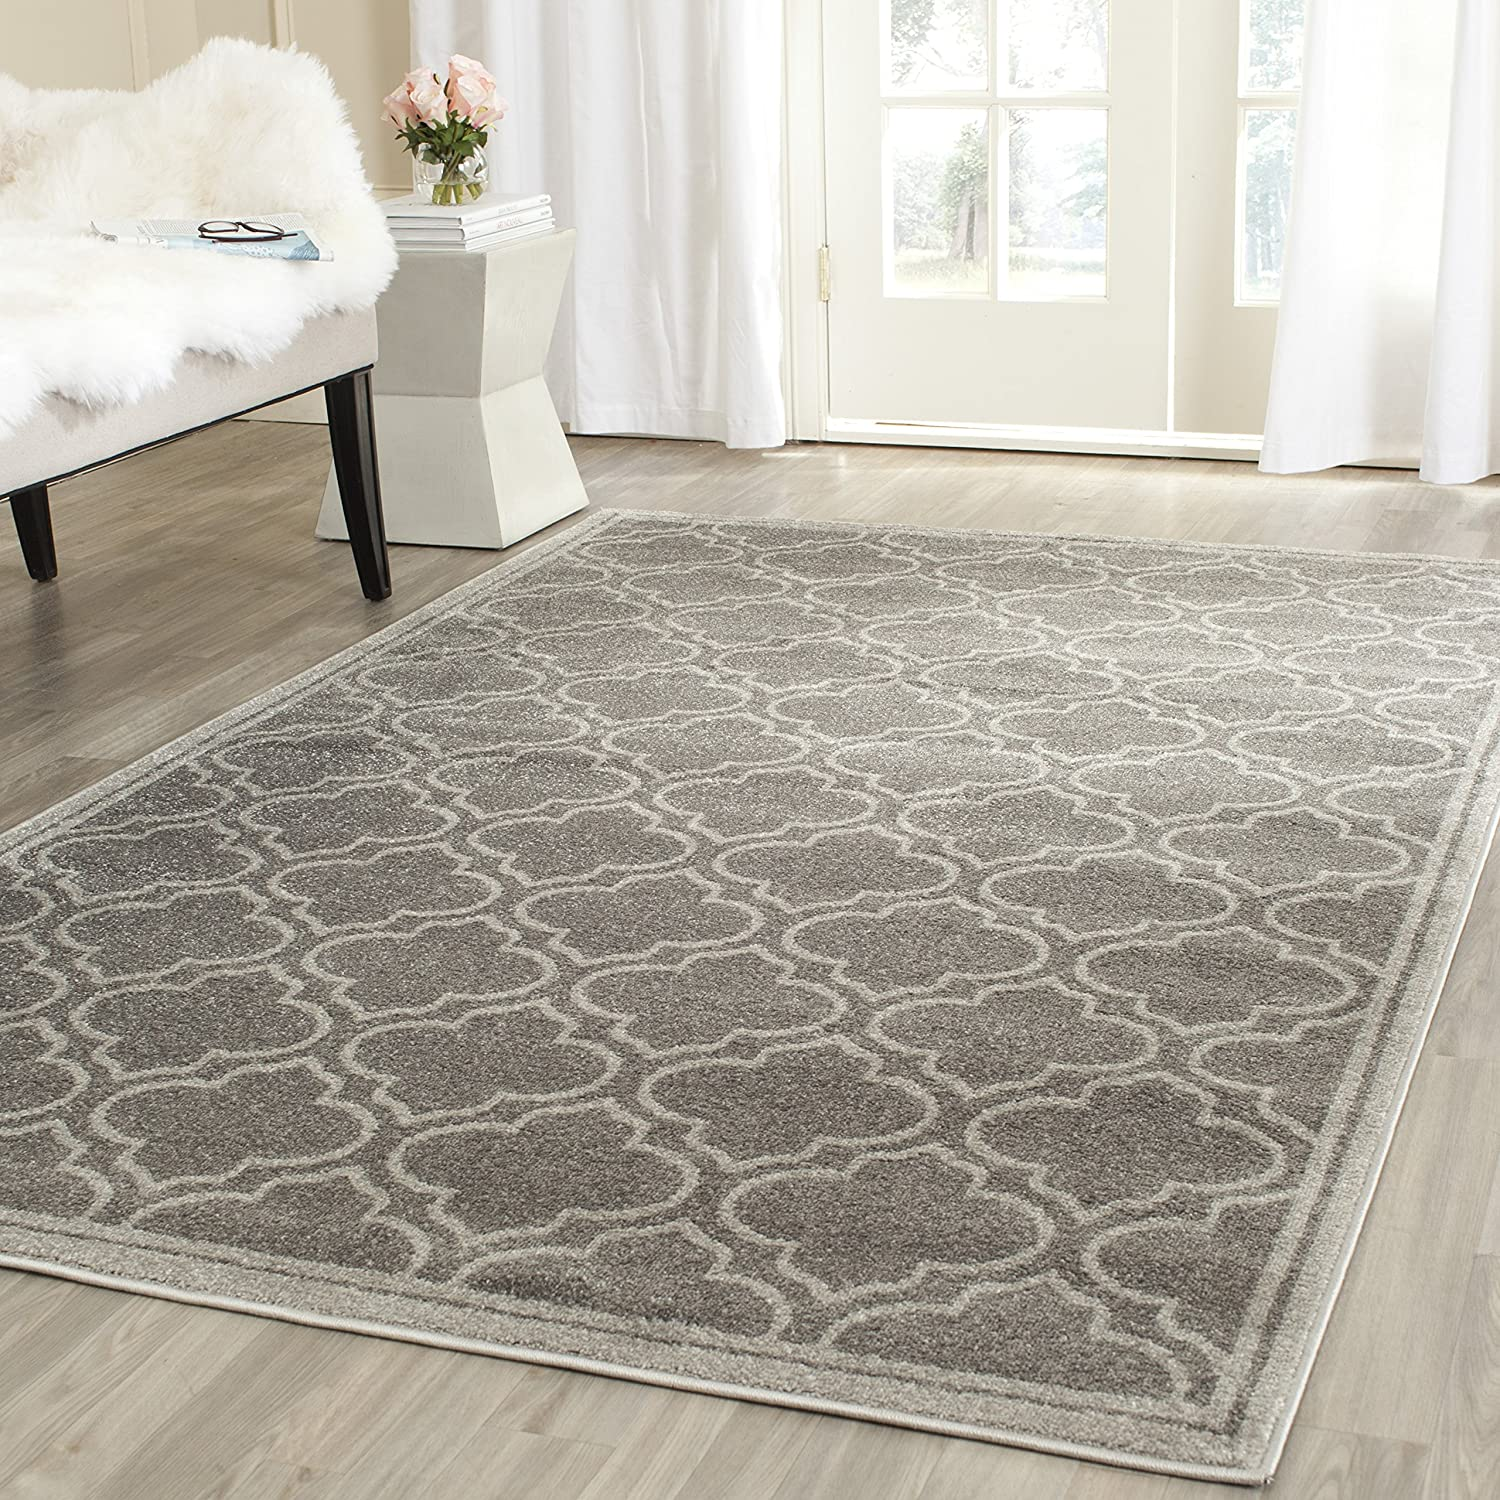 Amazon.com: Safavieh Amherst Collection AMT412C Grey and Light Grey ...